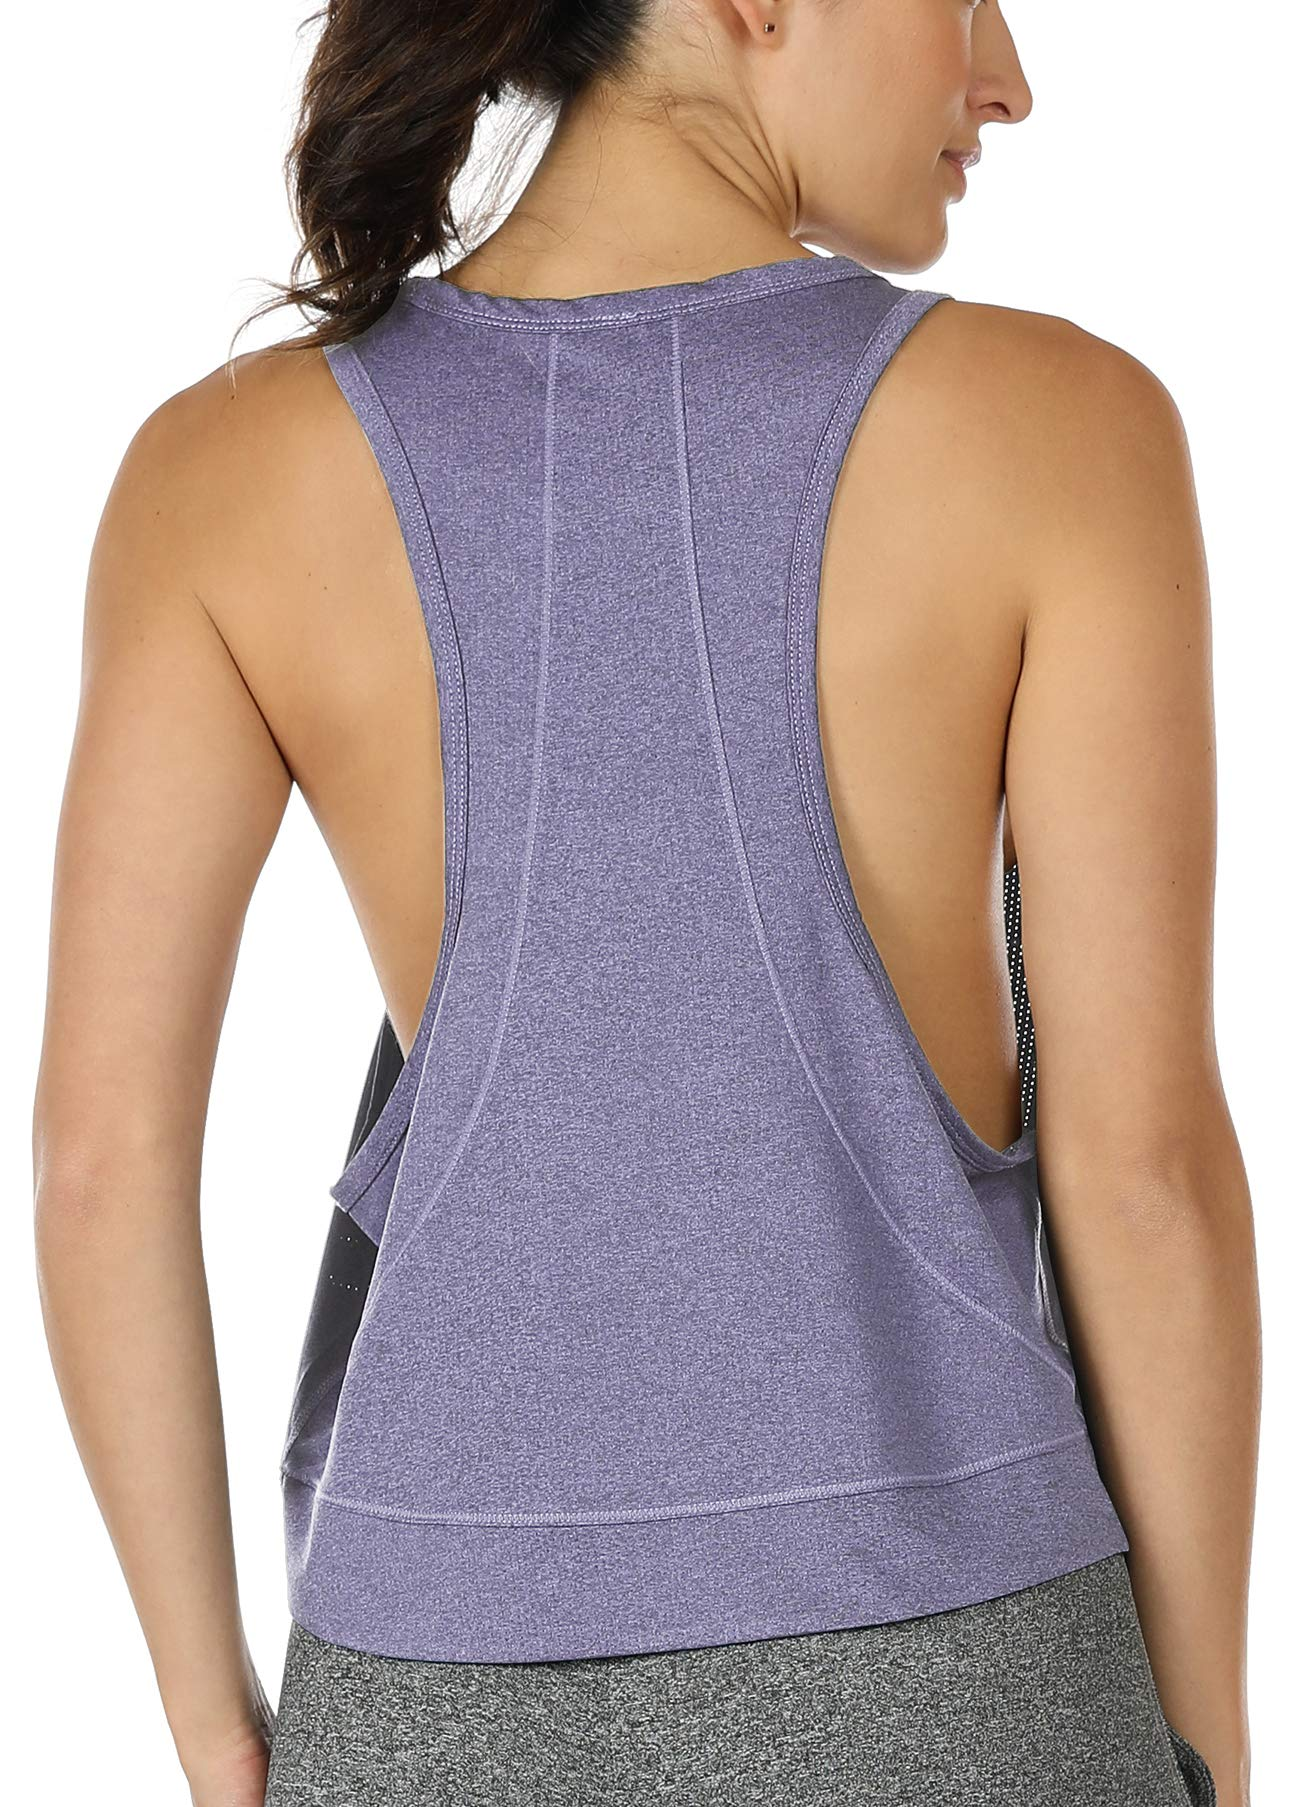 icyzone Yoga Tops Activewear Workout Clothes - Sports Racerback Tank Tops for Women (S, Lavender)